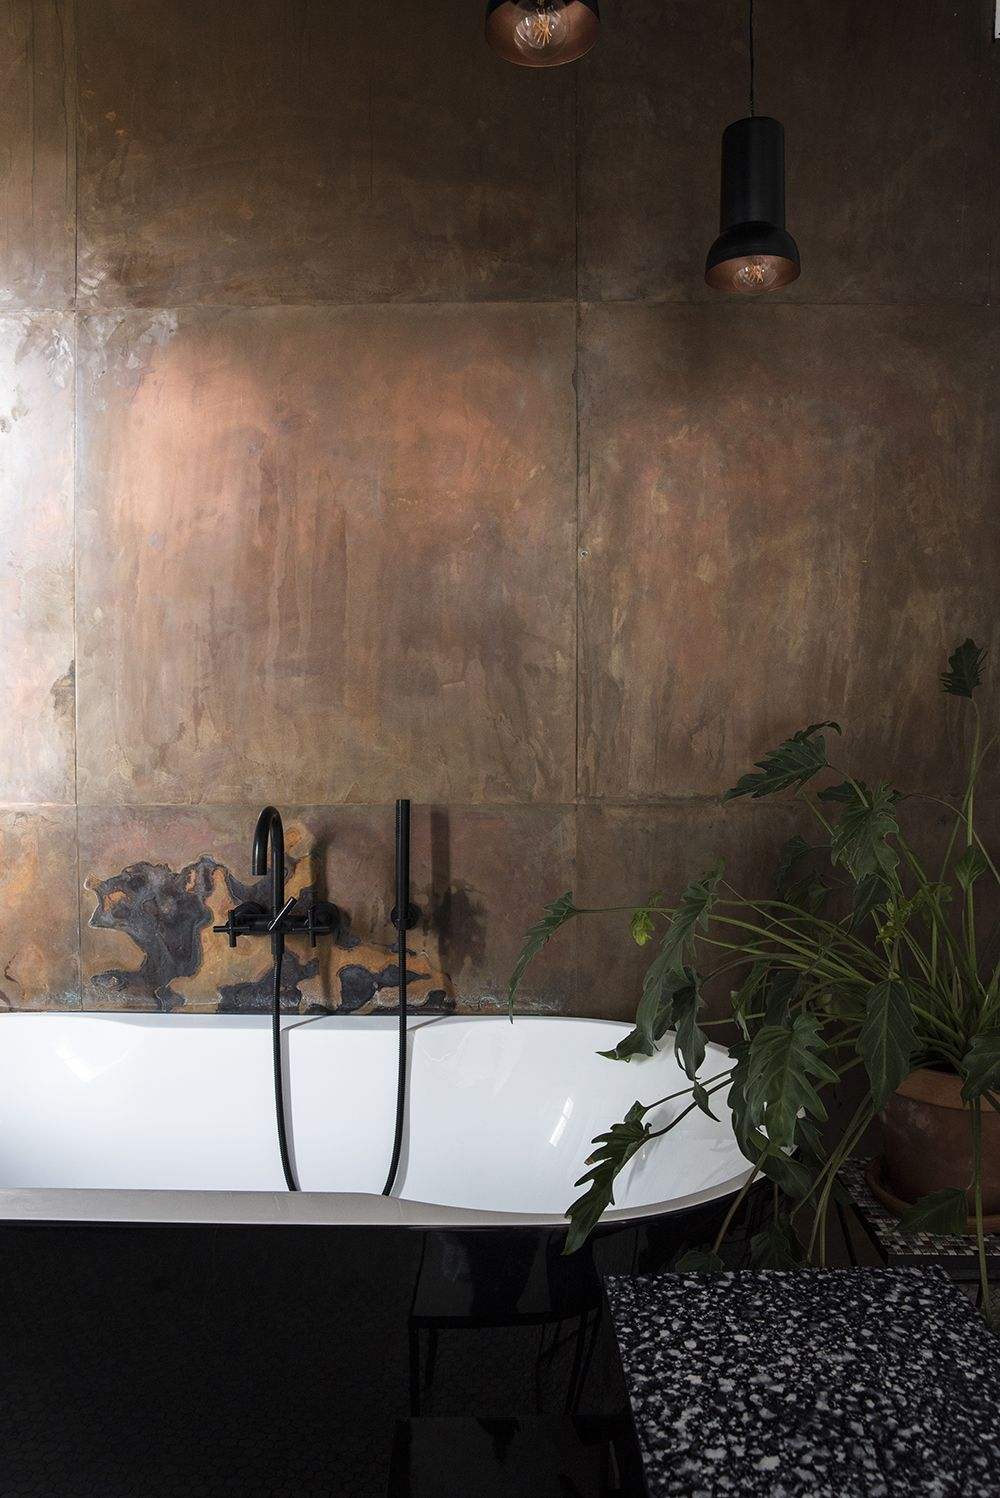 Black And White Bathroom With Copper Wall Plants Black Dornbracht Tara Faucets Copper Wall Black Faucet Bathroom White Bathroom